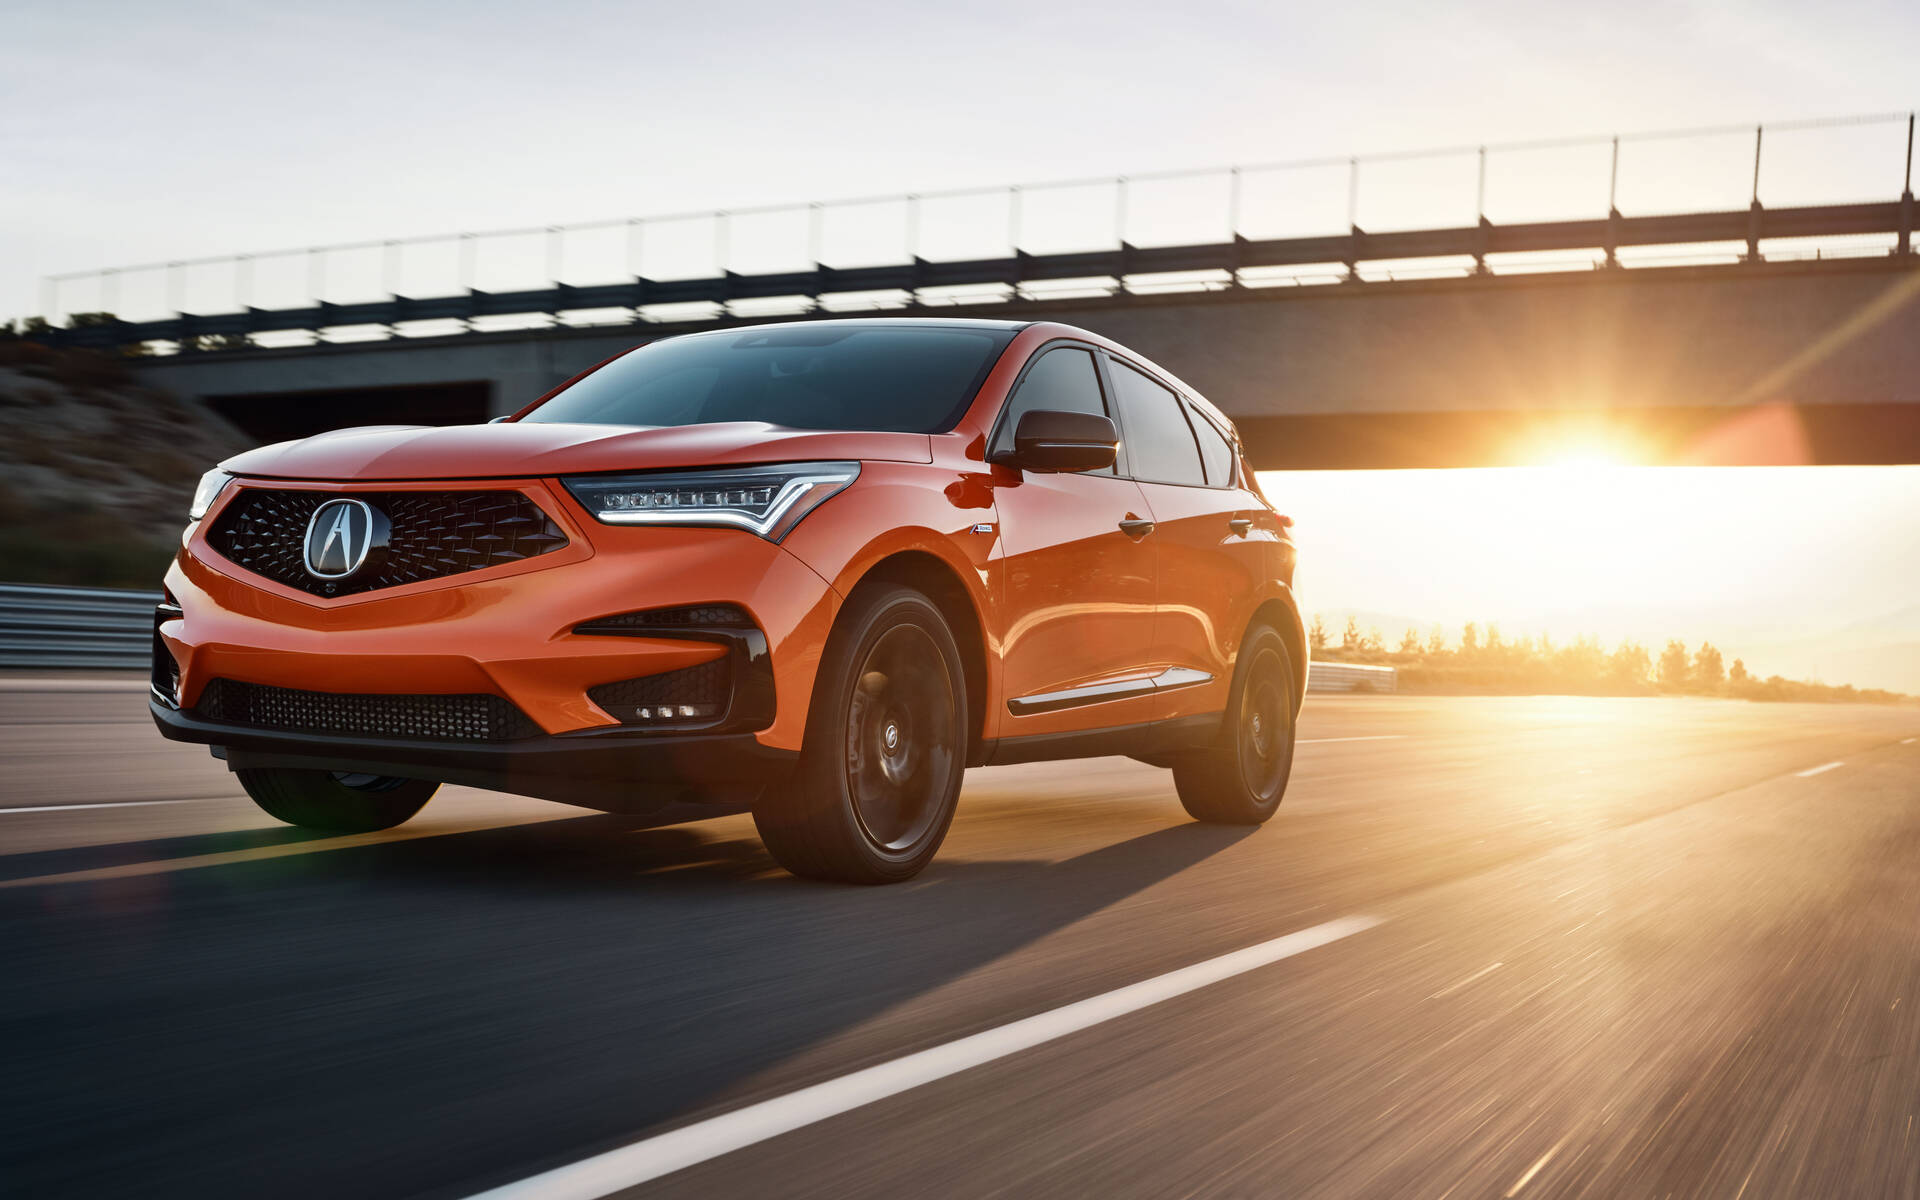 2021 Acura Rdx Pmc Edition Orange Is The New Black The Car Guide